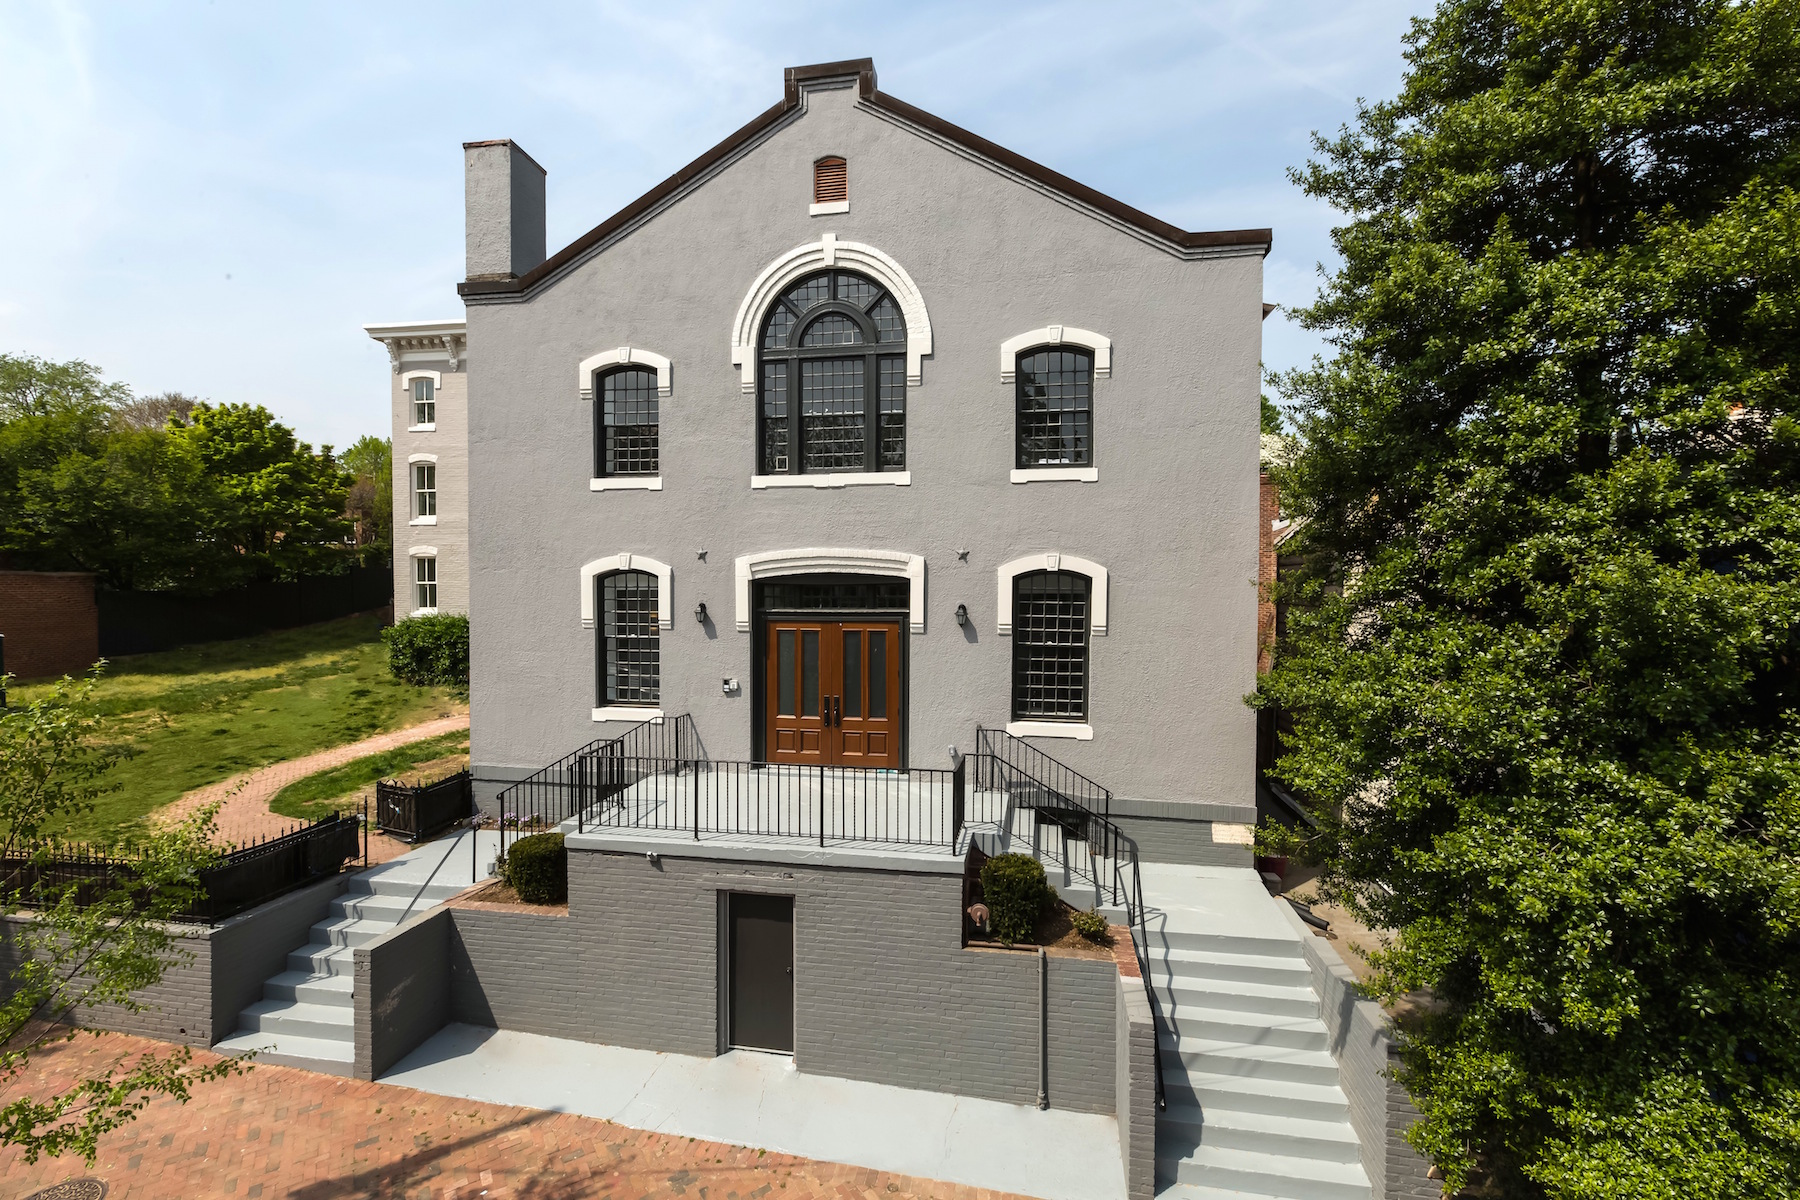 Condominium for Sale at Georgetown 2709 N Street Nw 101 Georgetown, Washington, District Of Columbia, 20007 United States